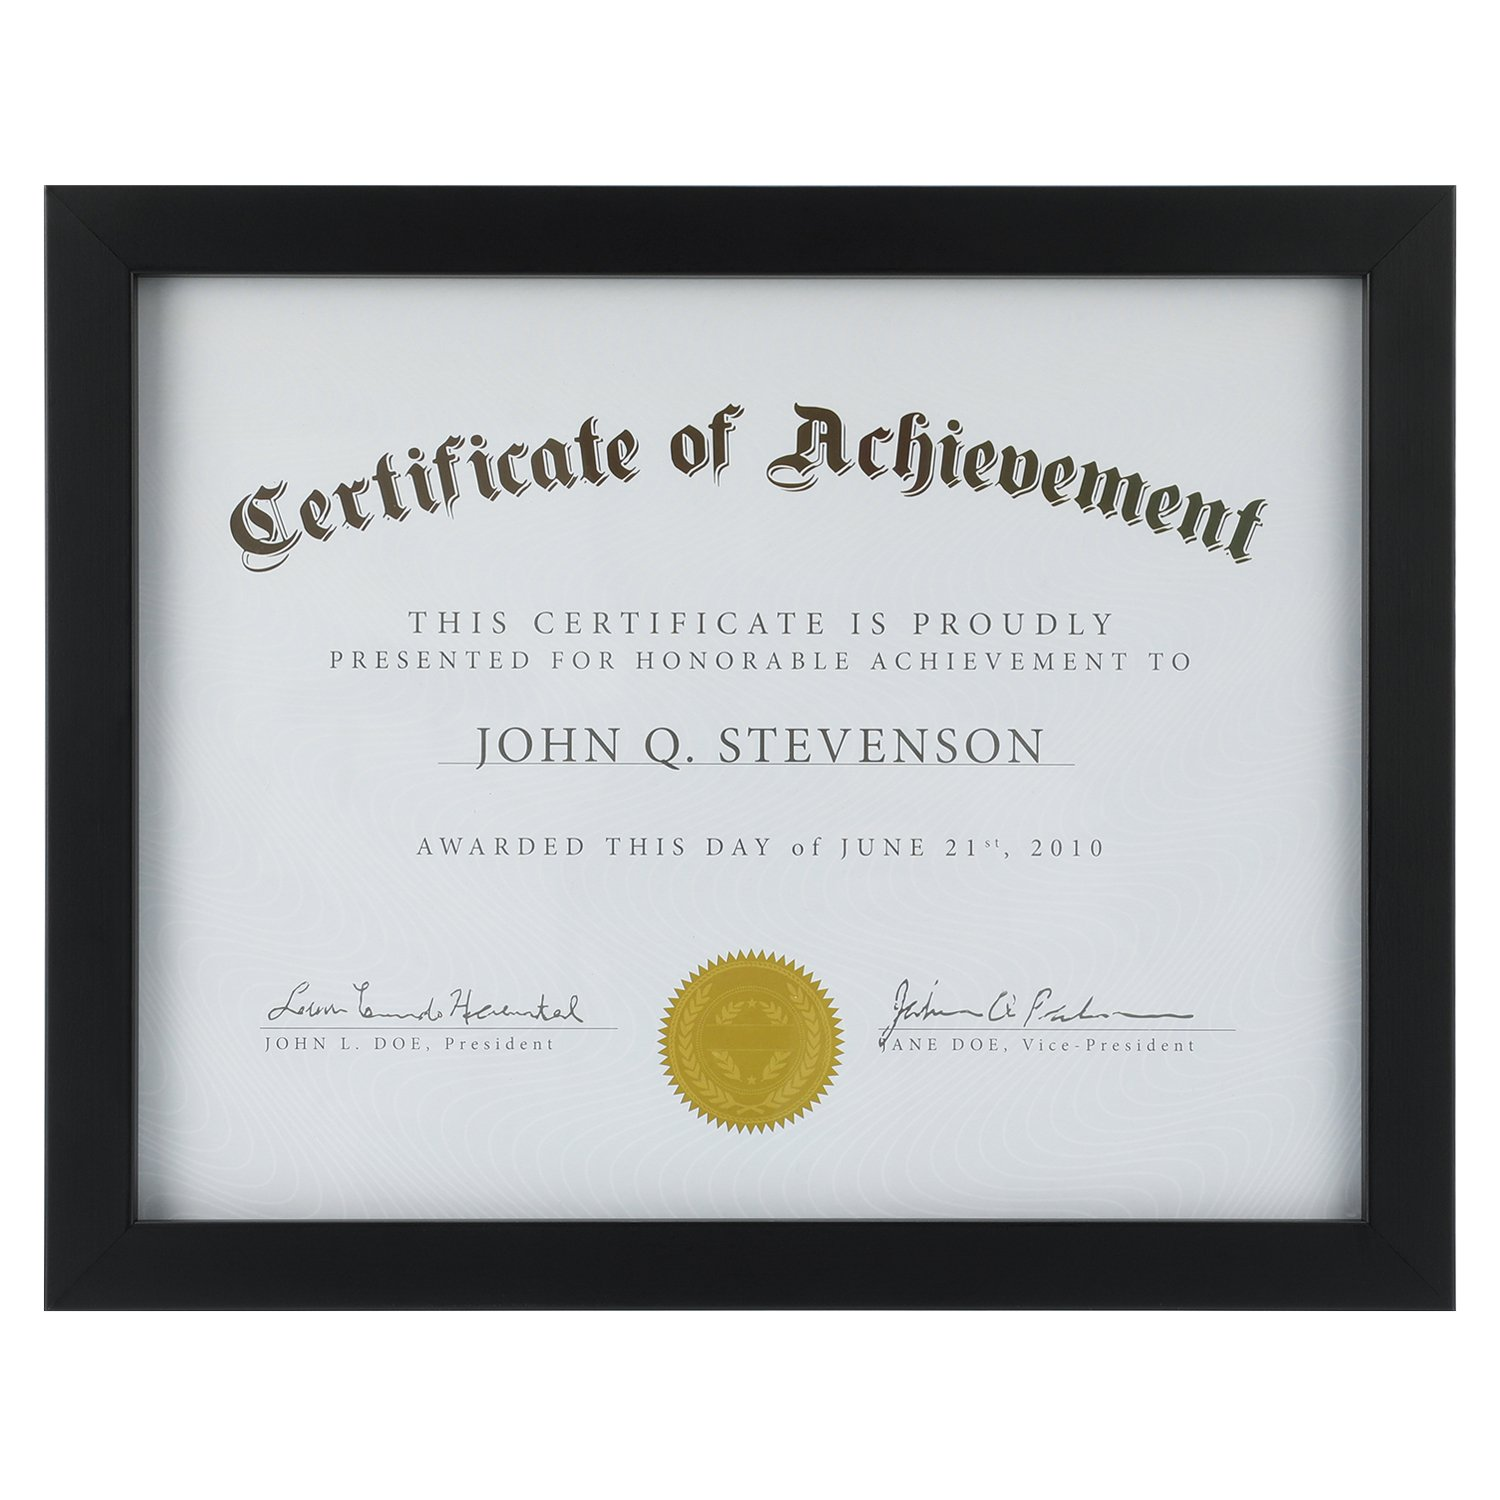 ONE WALL Tempered Glass Picture Frame Black 8.5x11 Documents Certificate Diploma Without Mat by ONE WALL